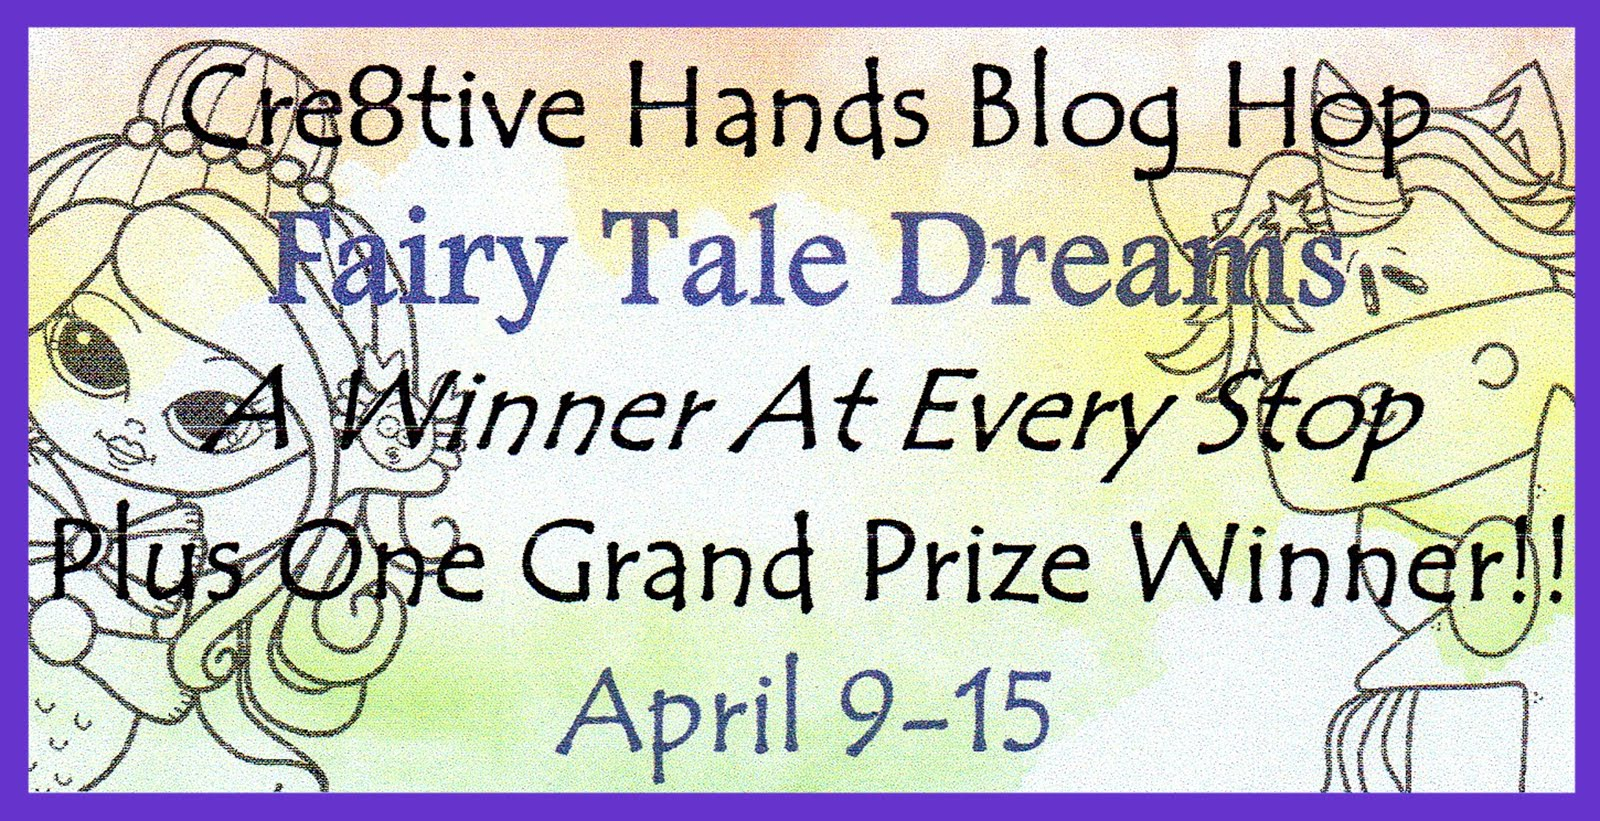 CRE8TIVE HANDS BLOG HOP